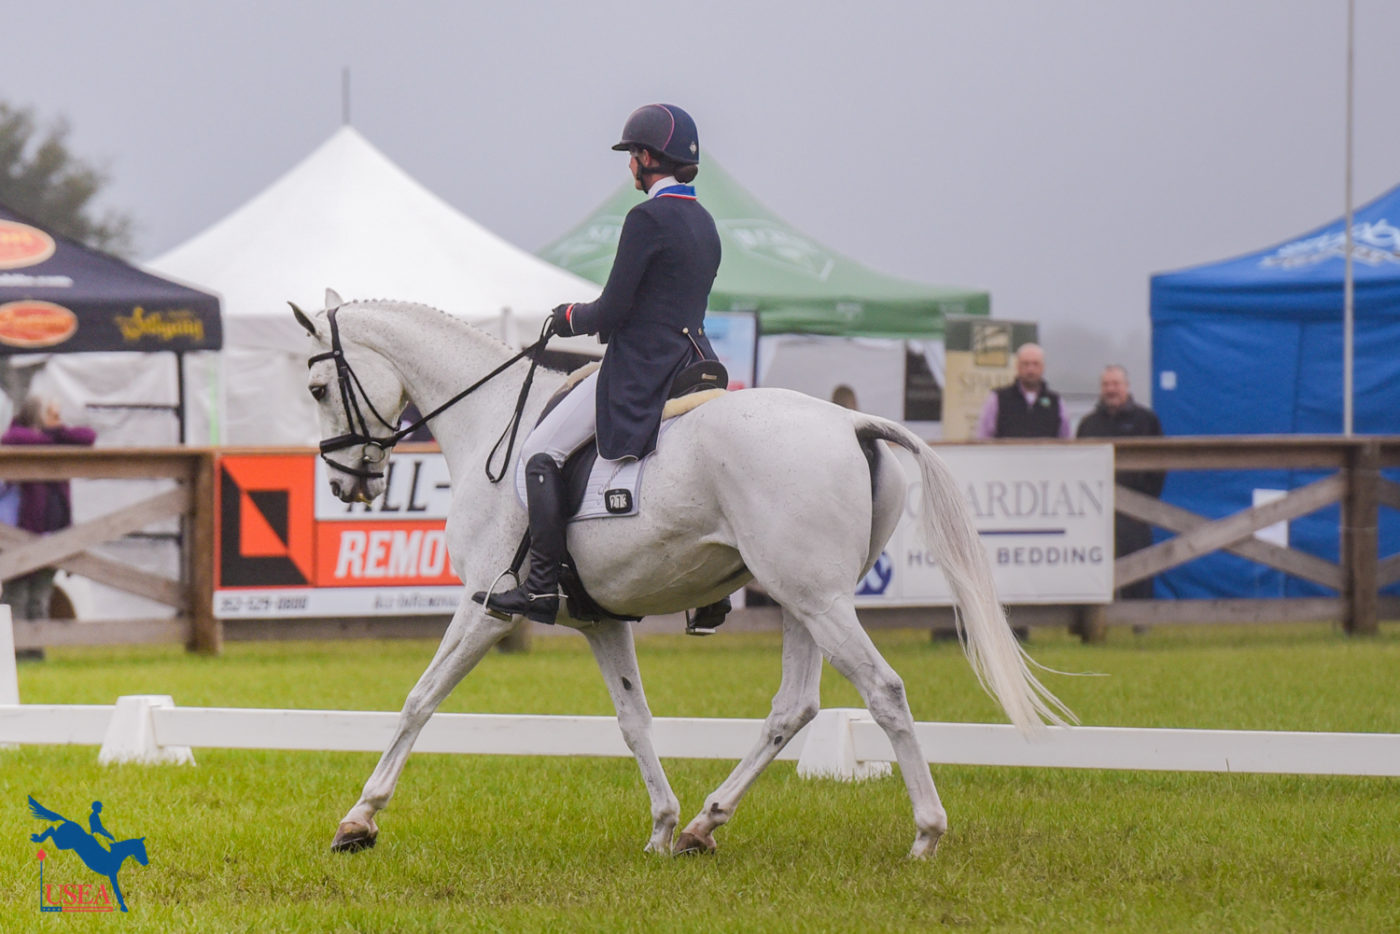 8th - Lauren Kieffer and Landmark's Monte Carlo - 32.7